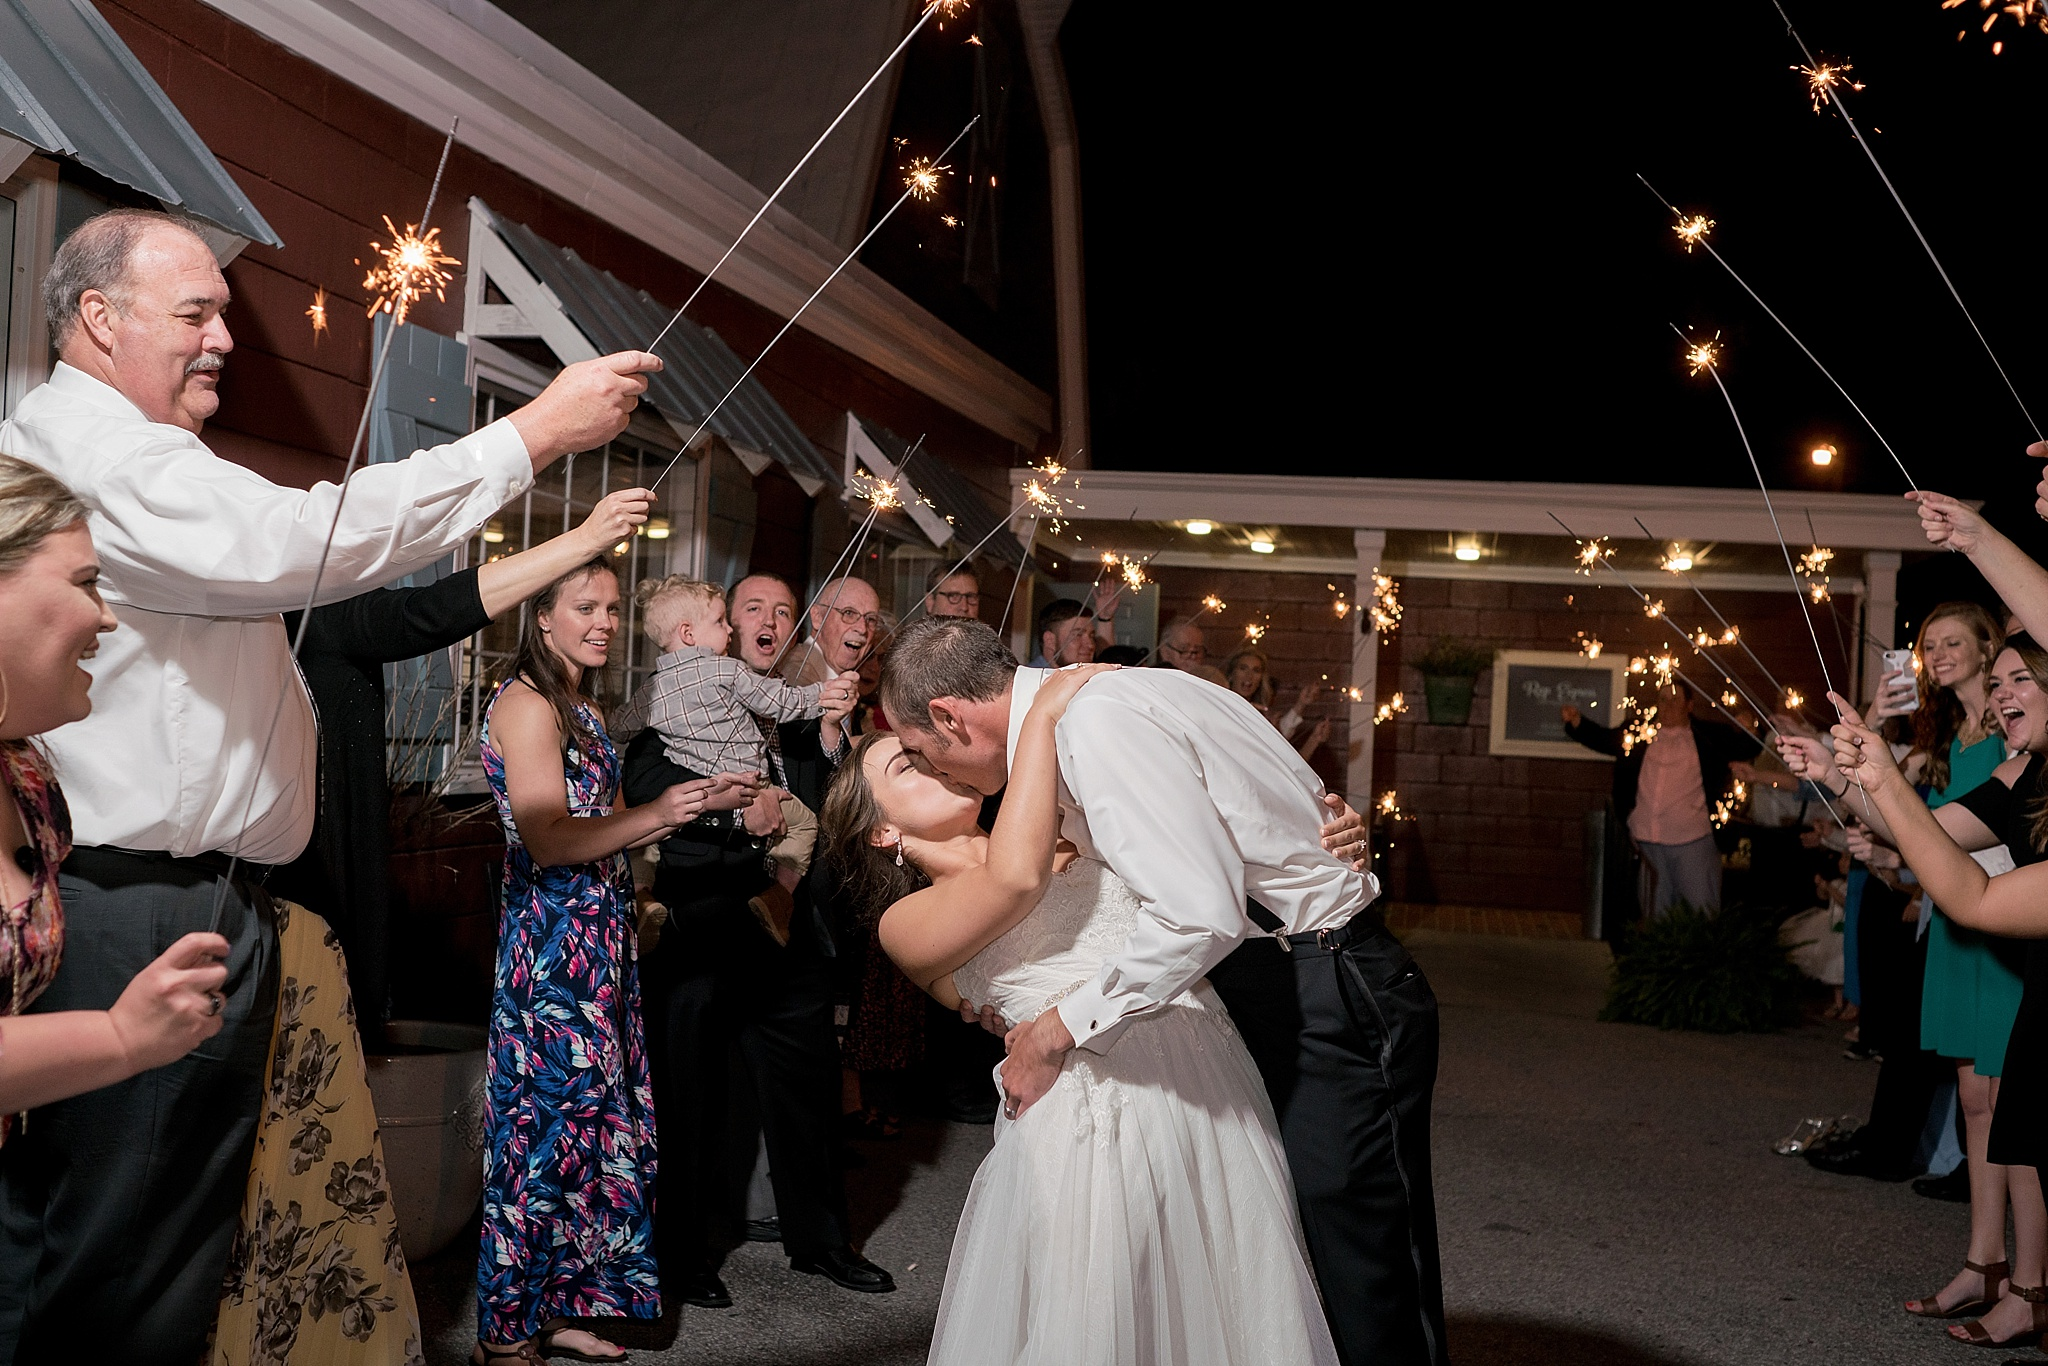 400-Saint-Andrews-Wedding-NC-Photographer-170.jpg